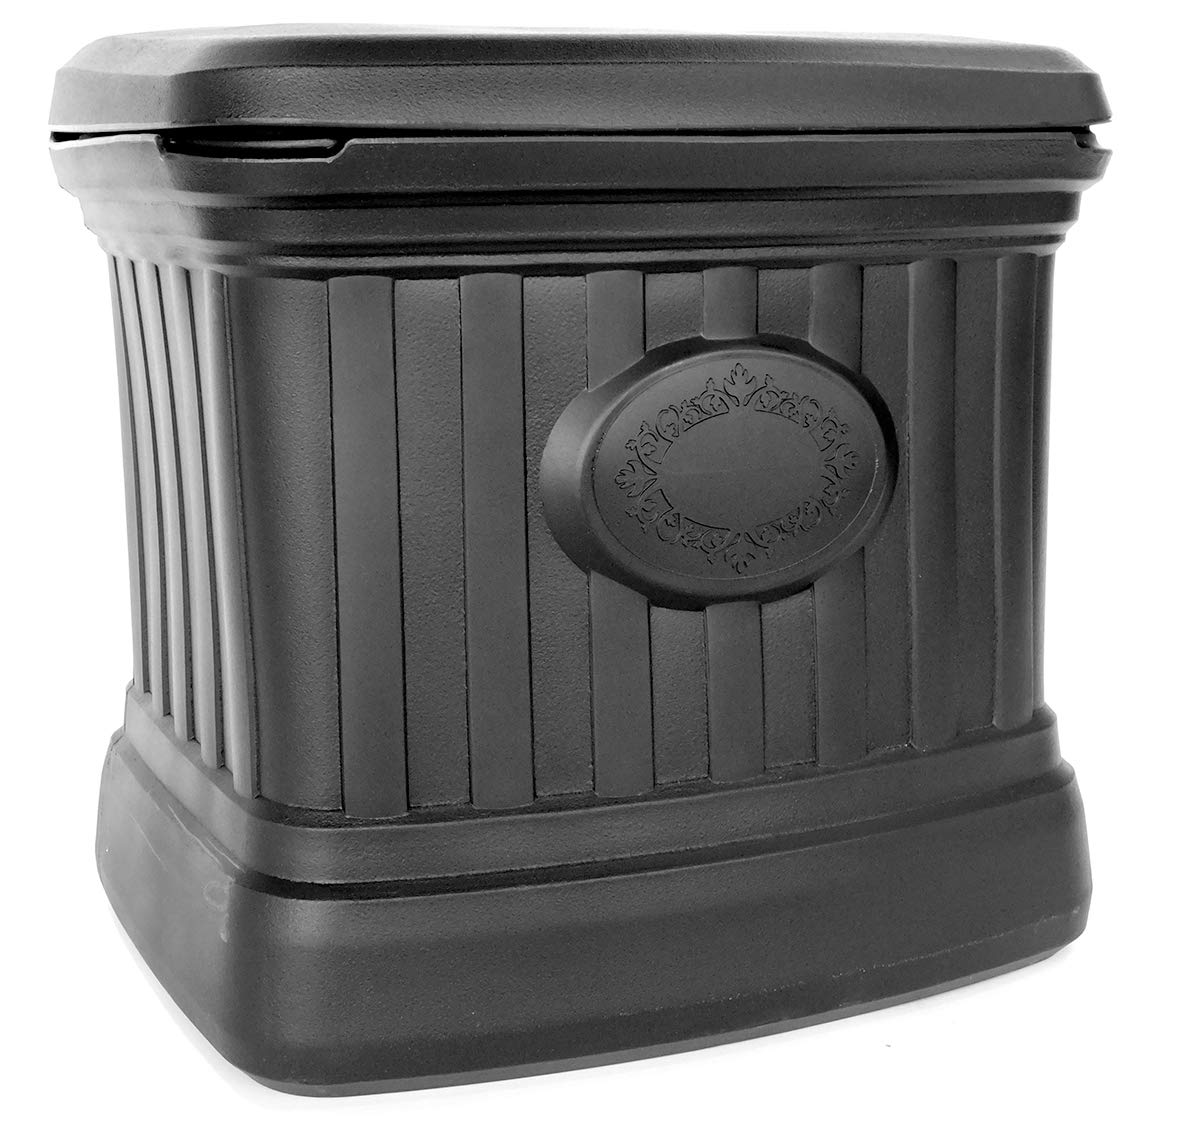 B07H3ZYRNT FCMP Outdoor SB120-BLK Residential Outdoor Storage Bin, Black 71c1BWP9K1L